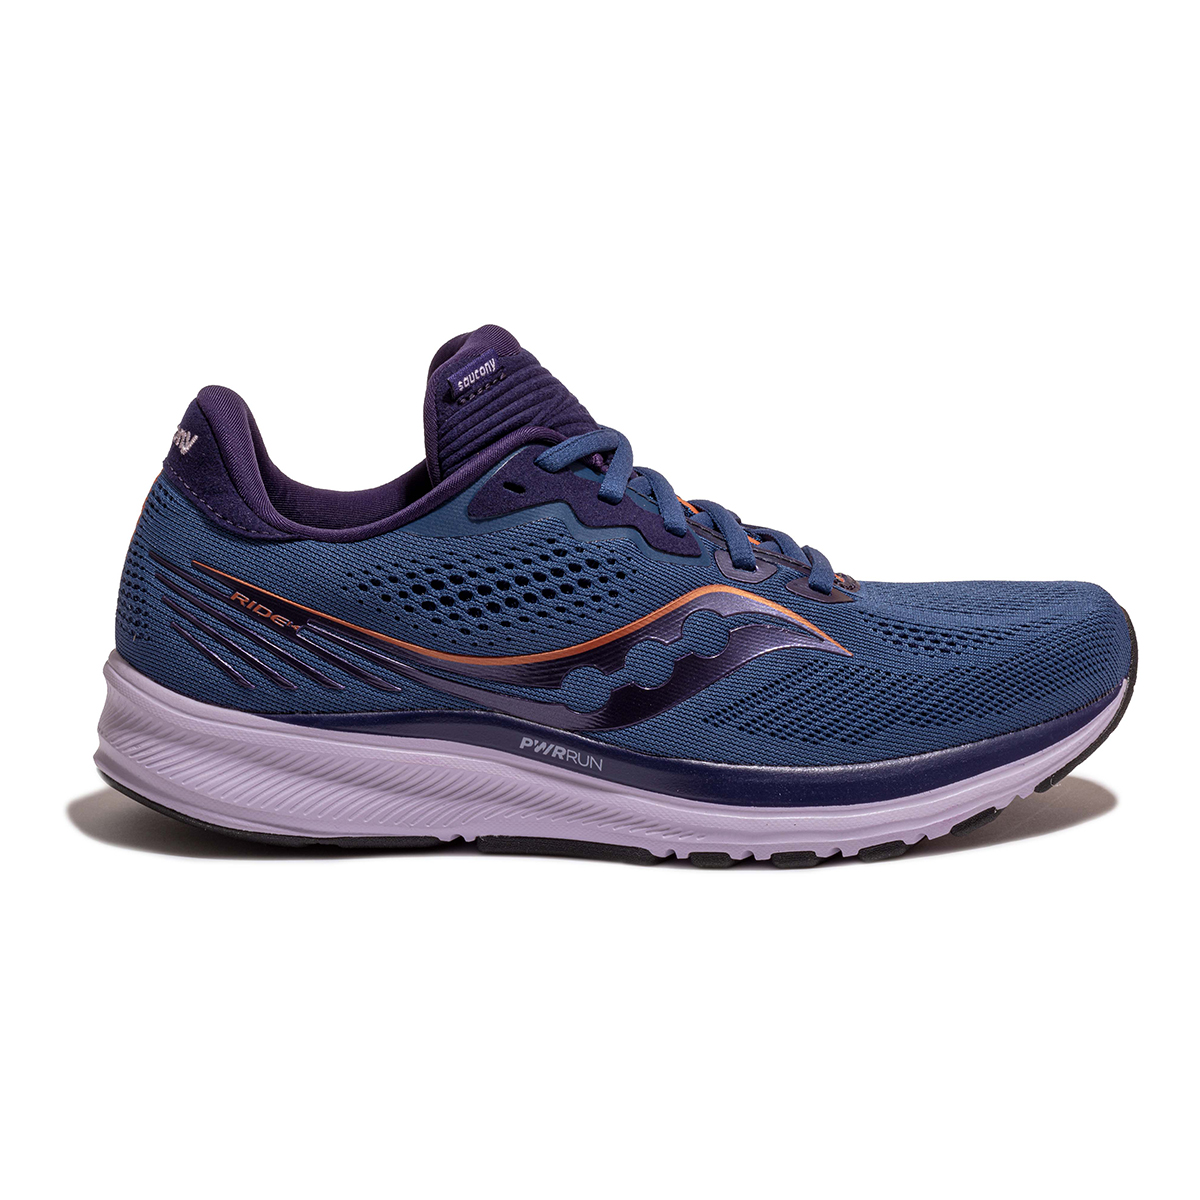 Women's Saucony Ride 14 Running Shoe - Color: Midnight/Copper - Size: 5 - Width: Regular, Midnight/Copper, large, image 1